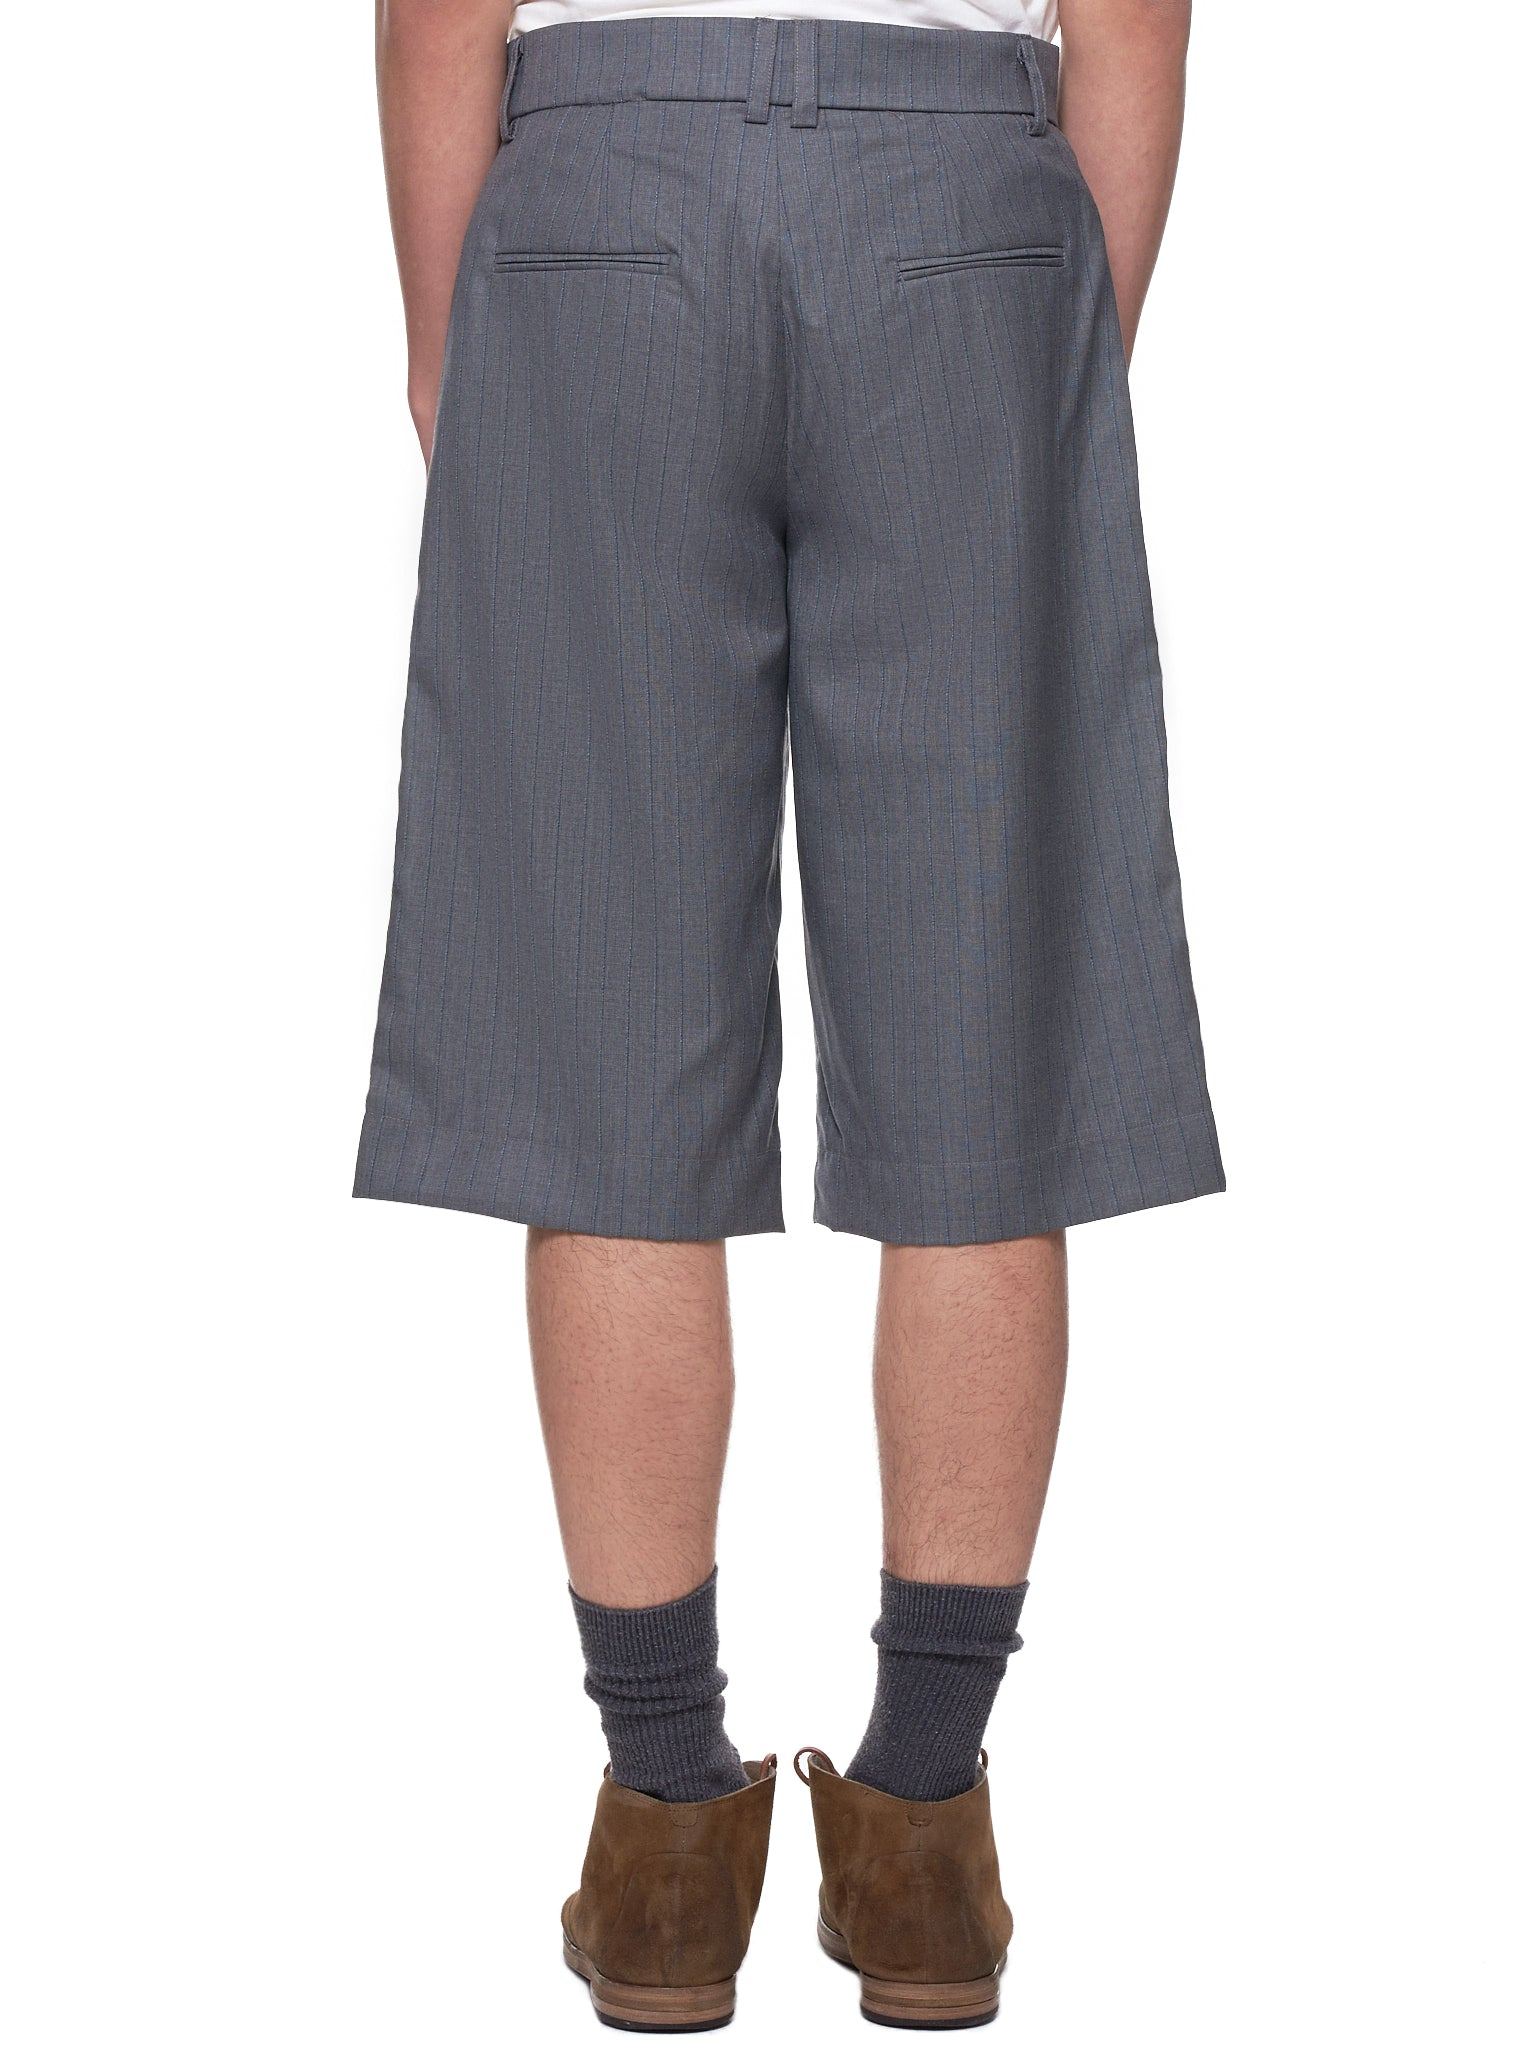 Delada Shorts - Hlorenzo Back